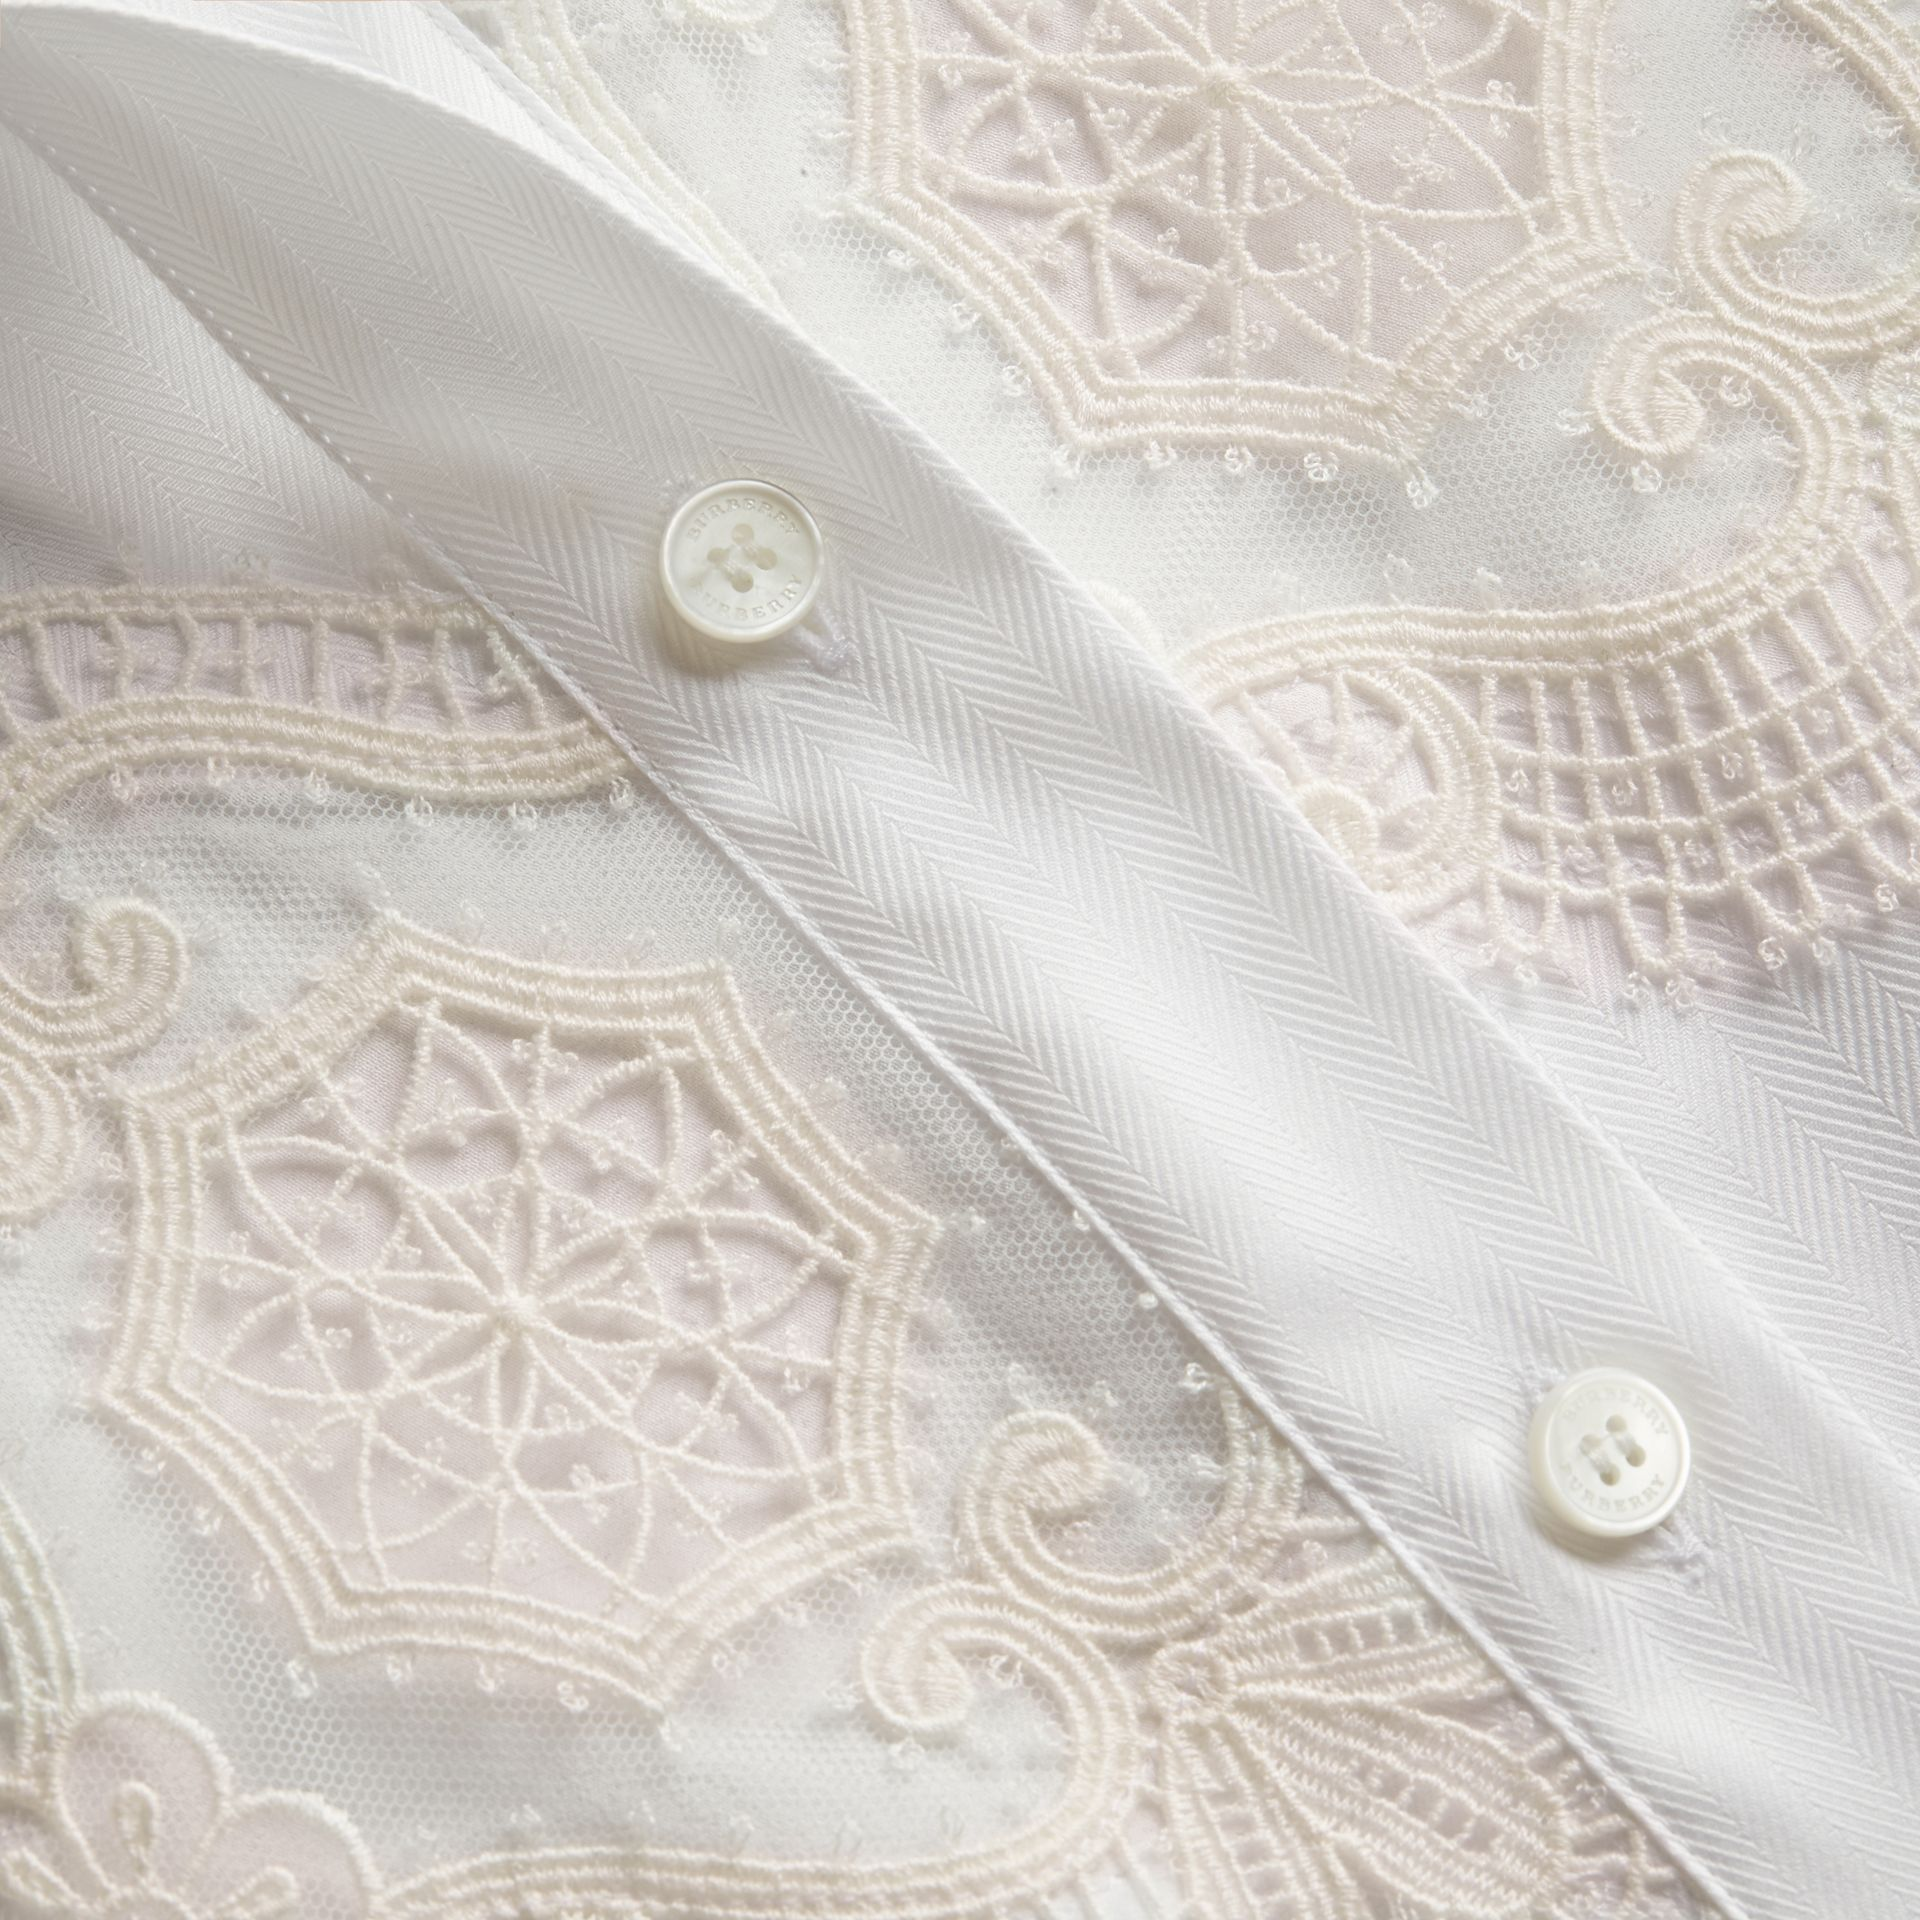 Lace Cutwork Herringbone Cotton Shirt in White - Women | Burberry - gallery image 1